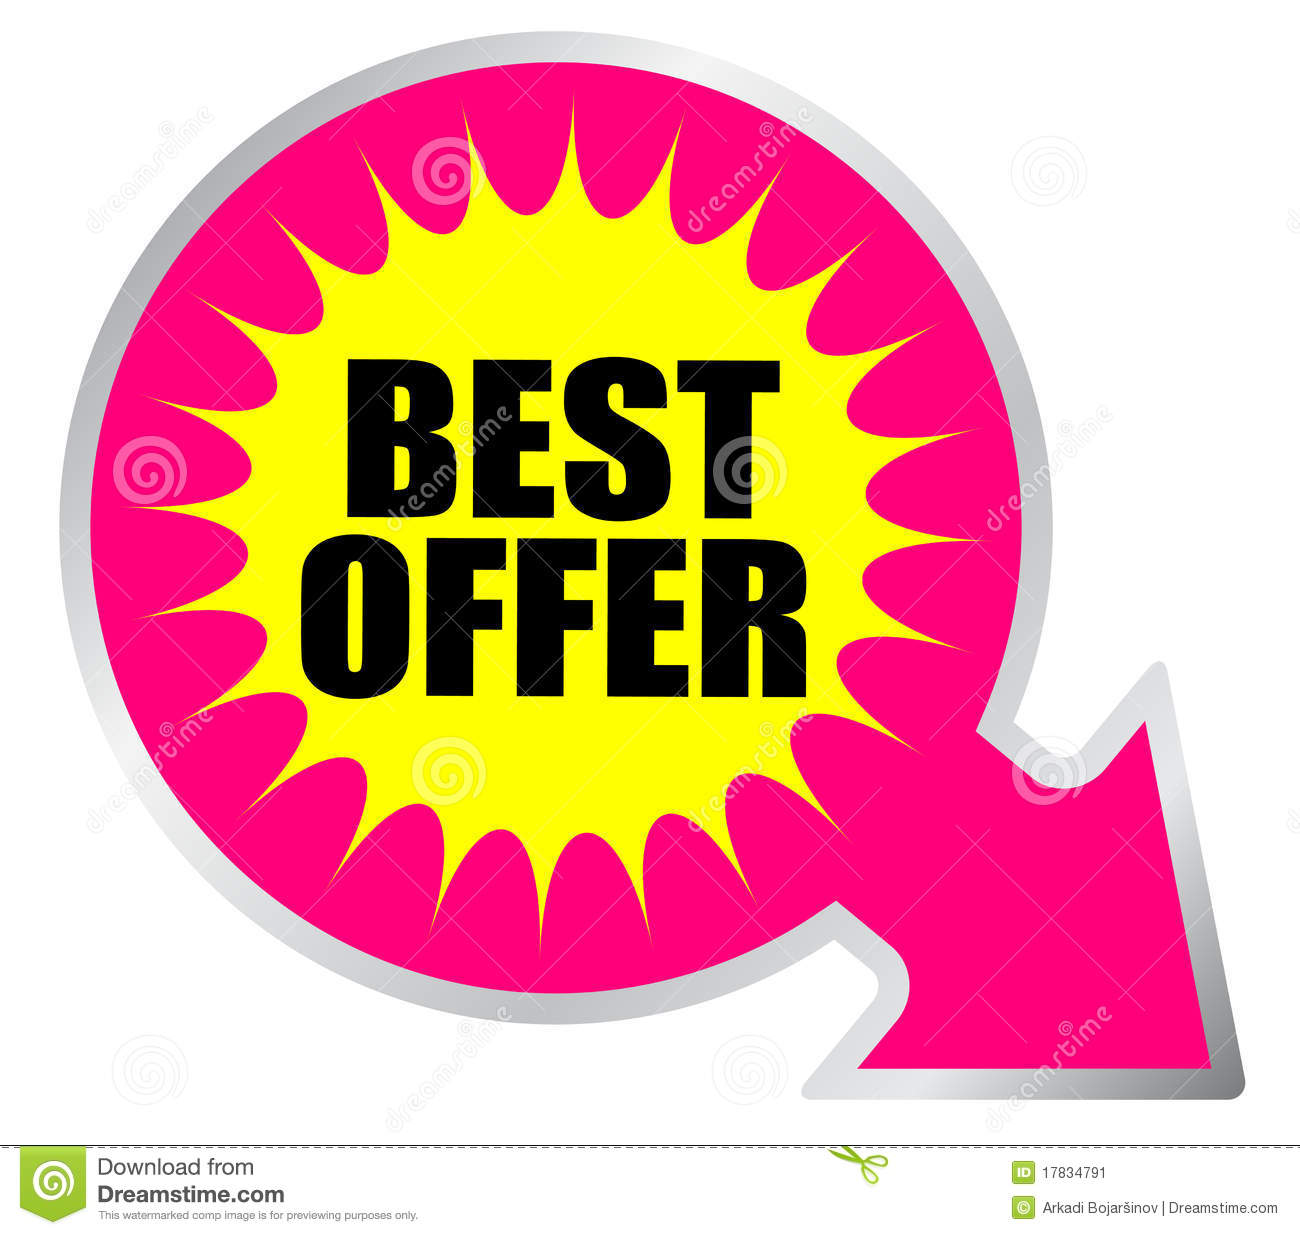 Best Offer Icon Stock Image - Image: 17834791